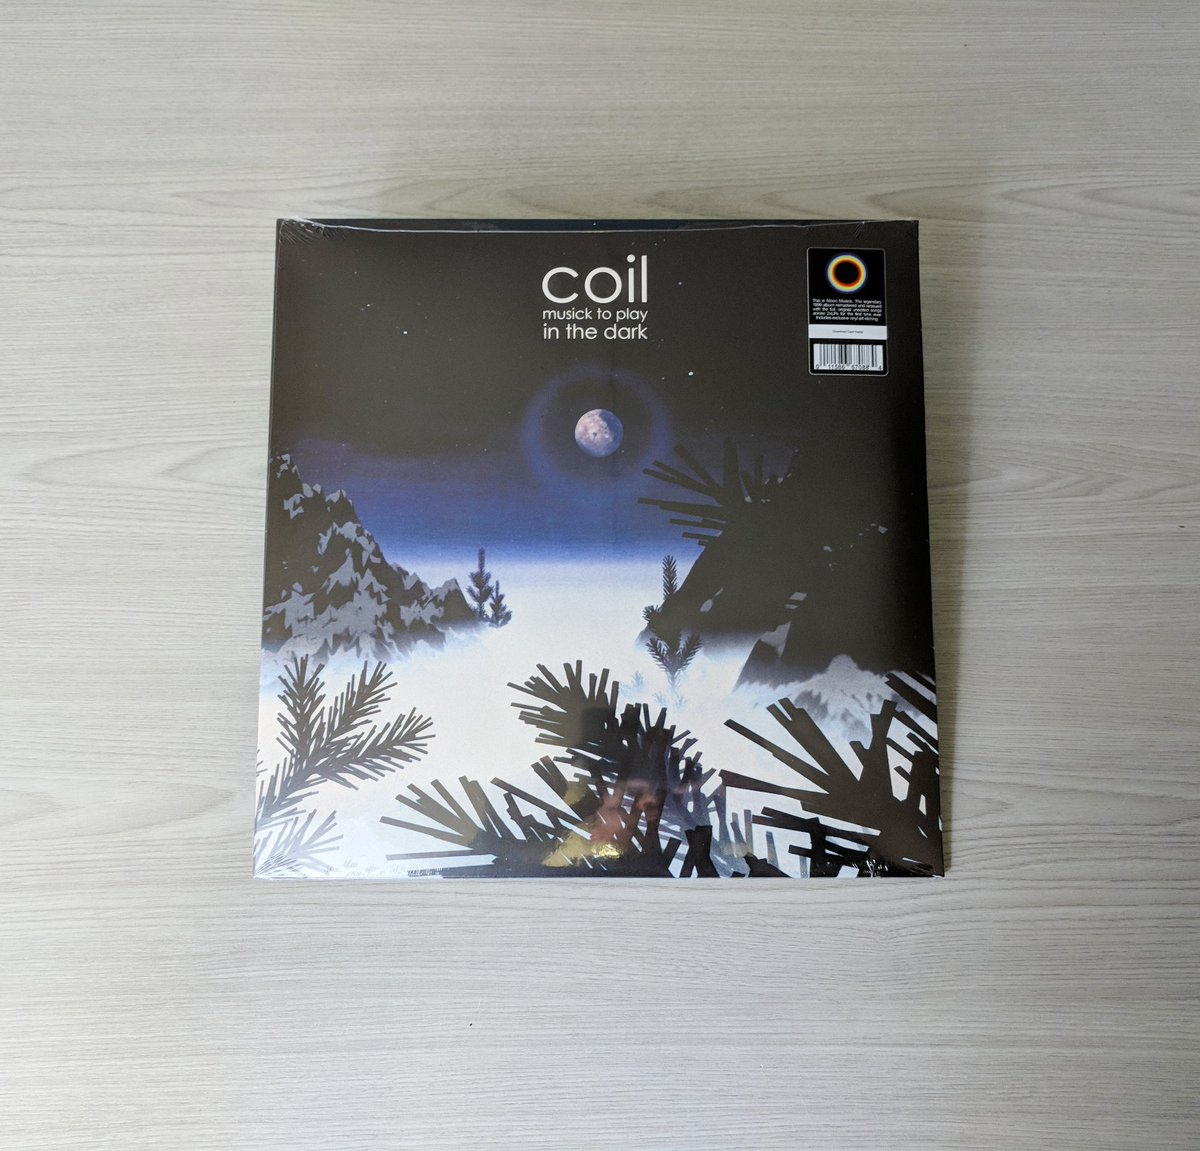 JUST IN: 'Musick To Play In The Dark' by Coil 'Musick To Play In The Dark' has been a hugely sought-after record amongst Coil fans for decades now, and we're pleased to be bringing you the nocturnal masterpiece in its uncut form with remastered audio. normanrecords.com/records/183142…